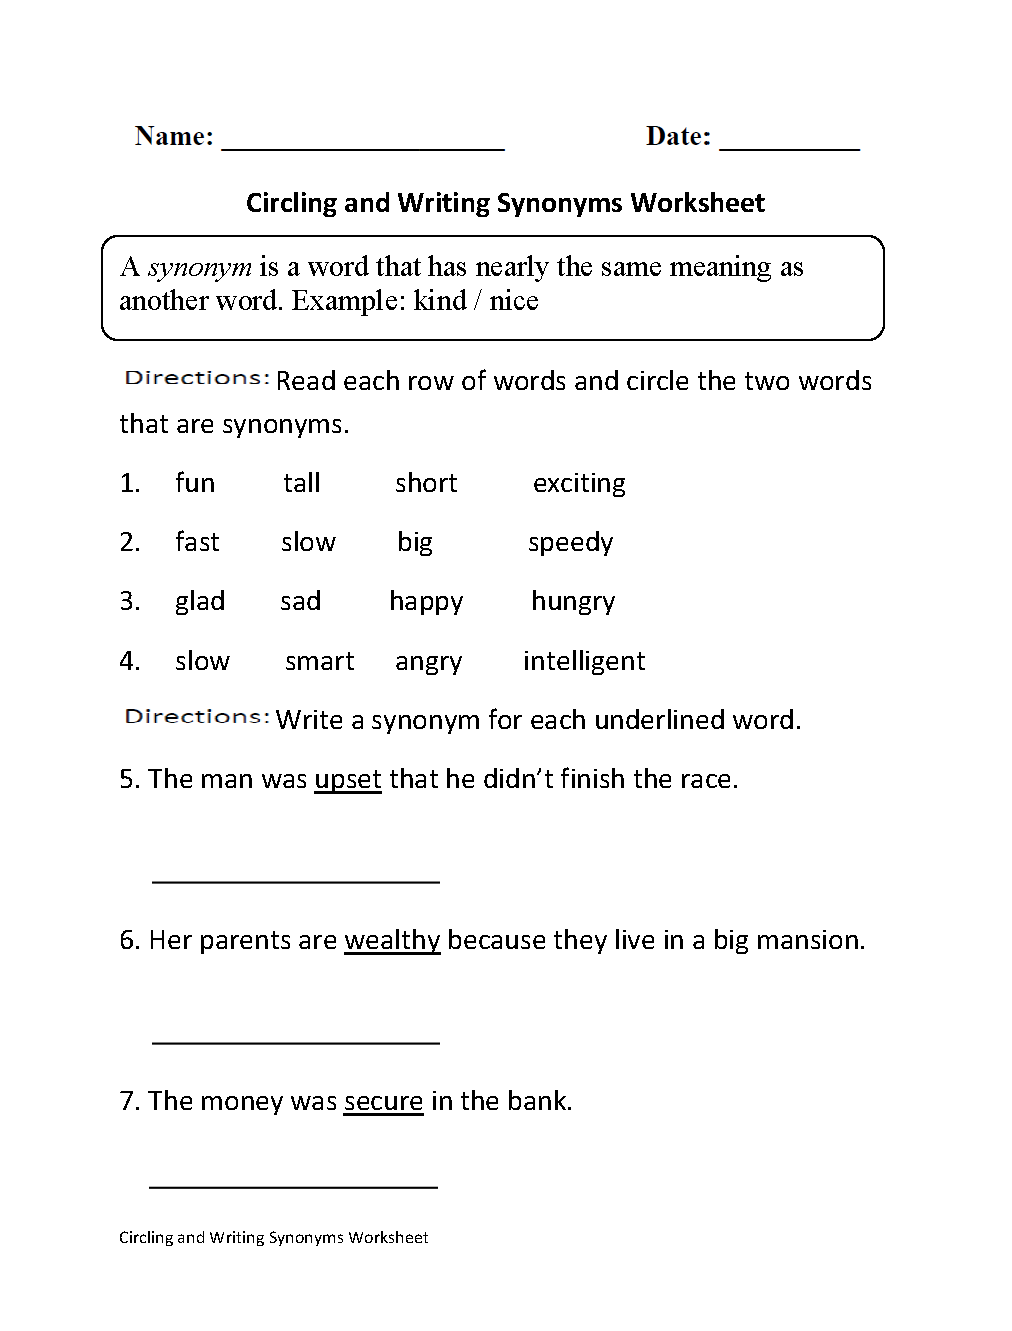 Circling And Writing Synonyms Worksheet Part 1 Beginner